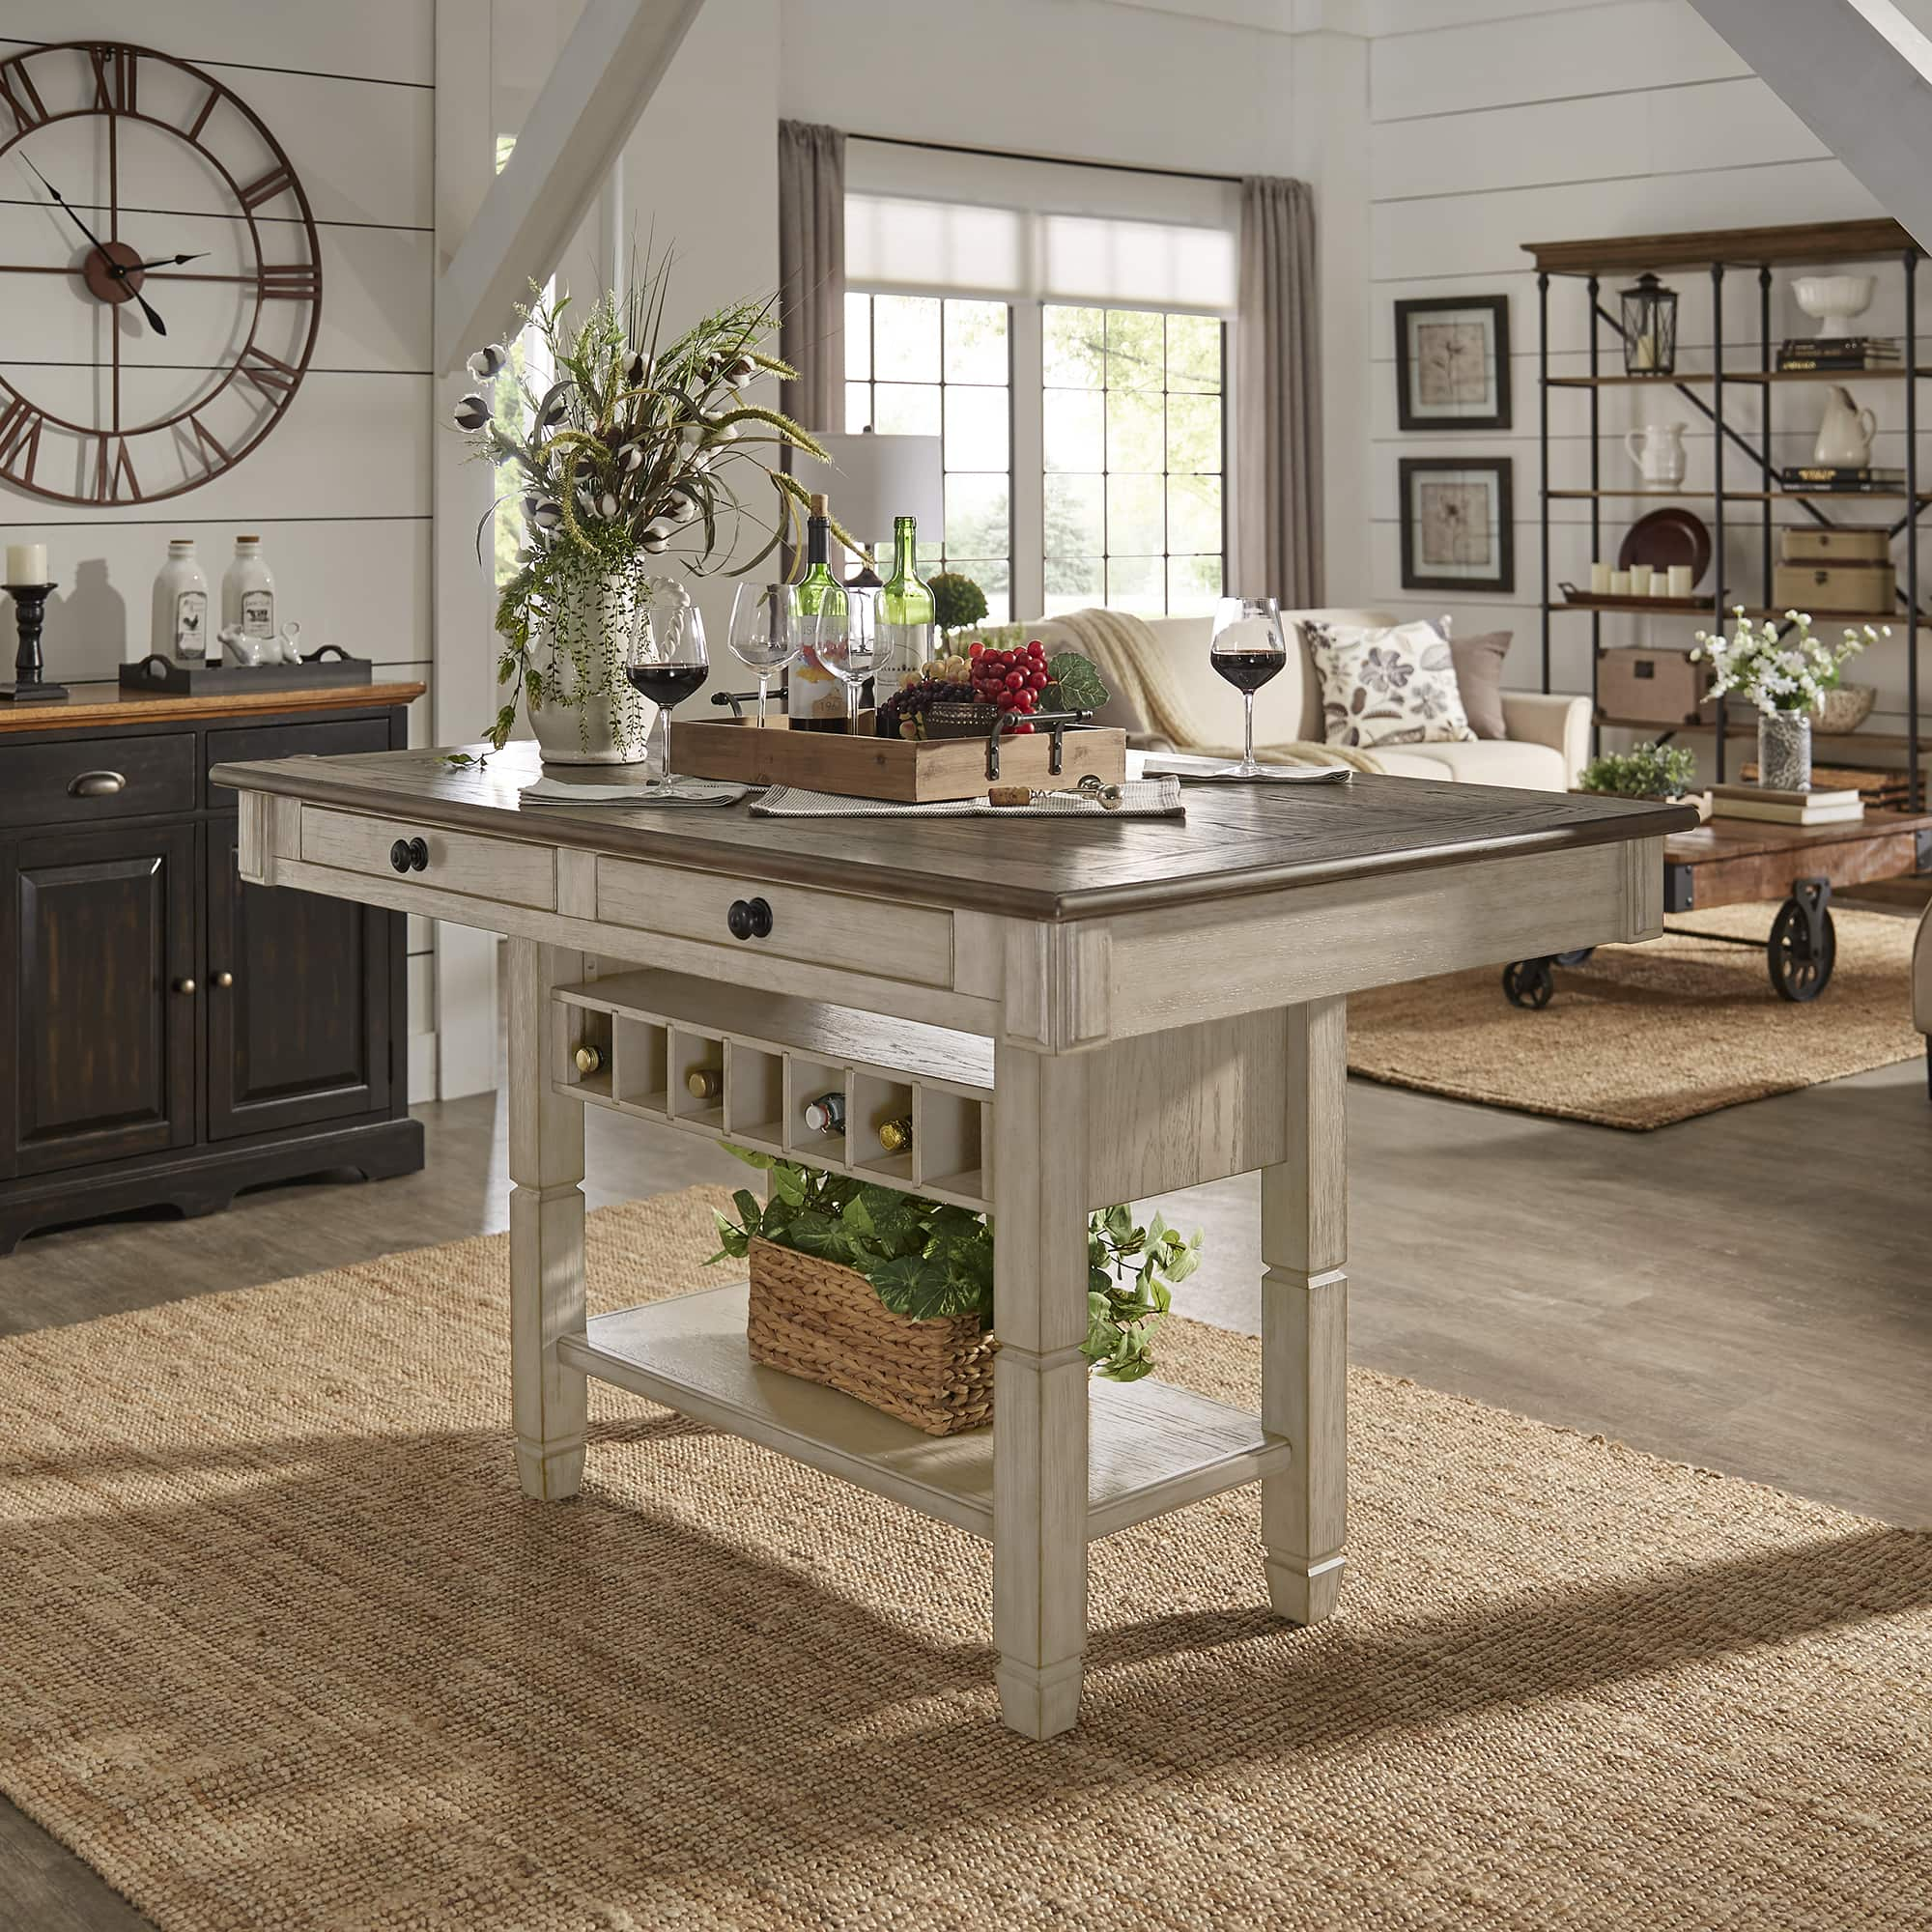 Buy Dining Table Online: Buy Kitchen & Dining Room Tables Online At Overstock